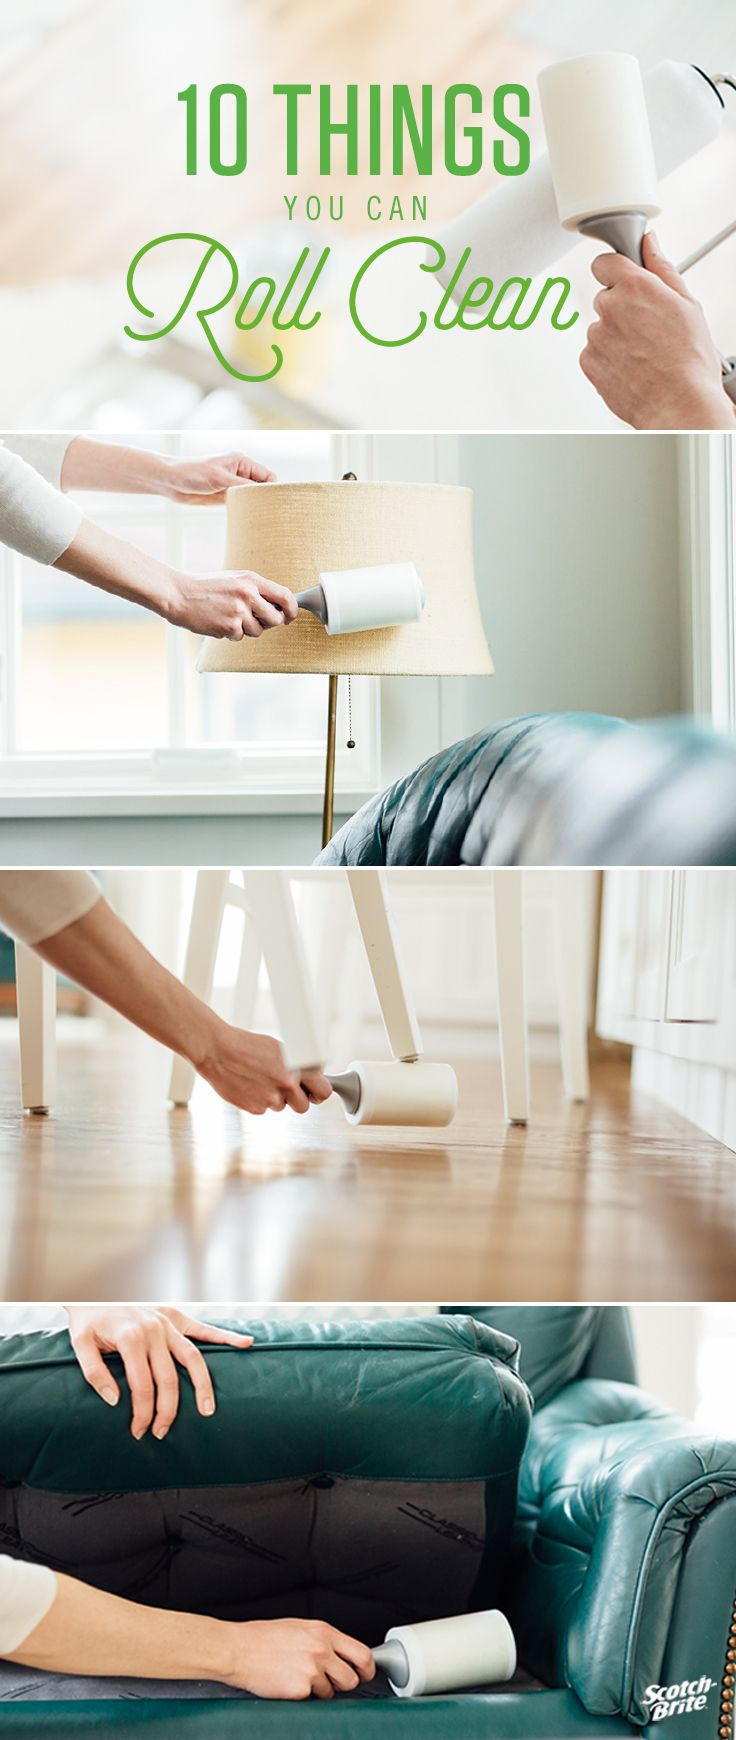 How to Clean Using Only a Lint Roller. When you have guests coming over or are just running short on time, cleaning with a Scotch-Brite Lint Roller can quickly clean your living room, and more, with just a flick of your wrist. See all the things you can clean around your house with a single Lint Roller.